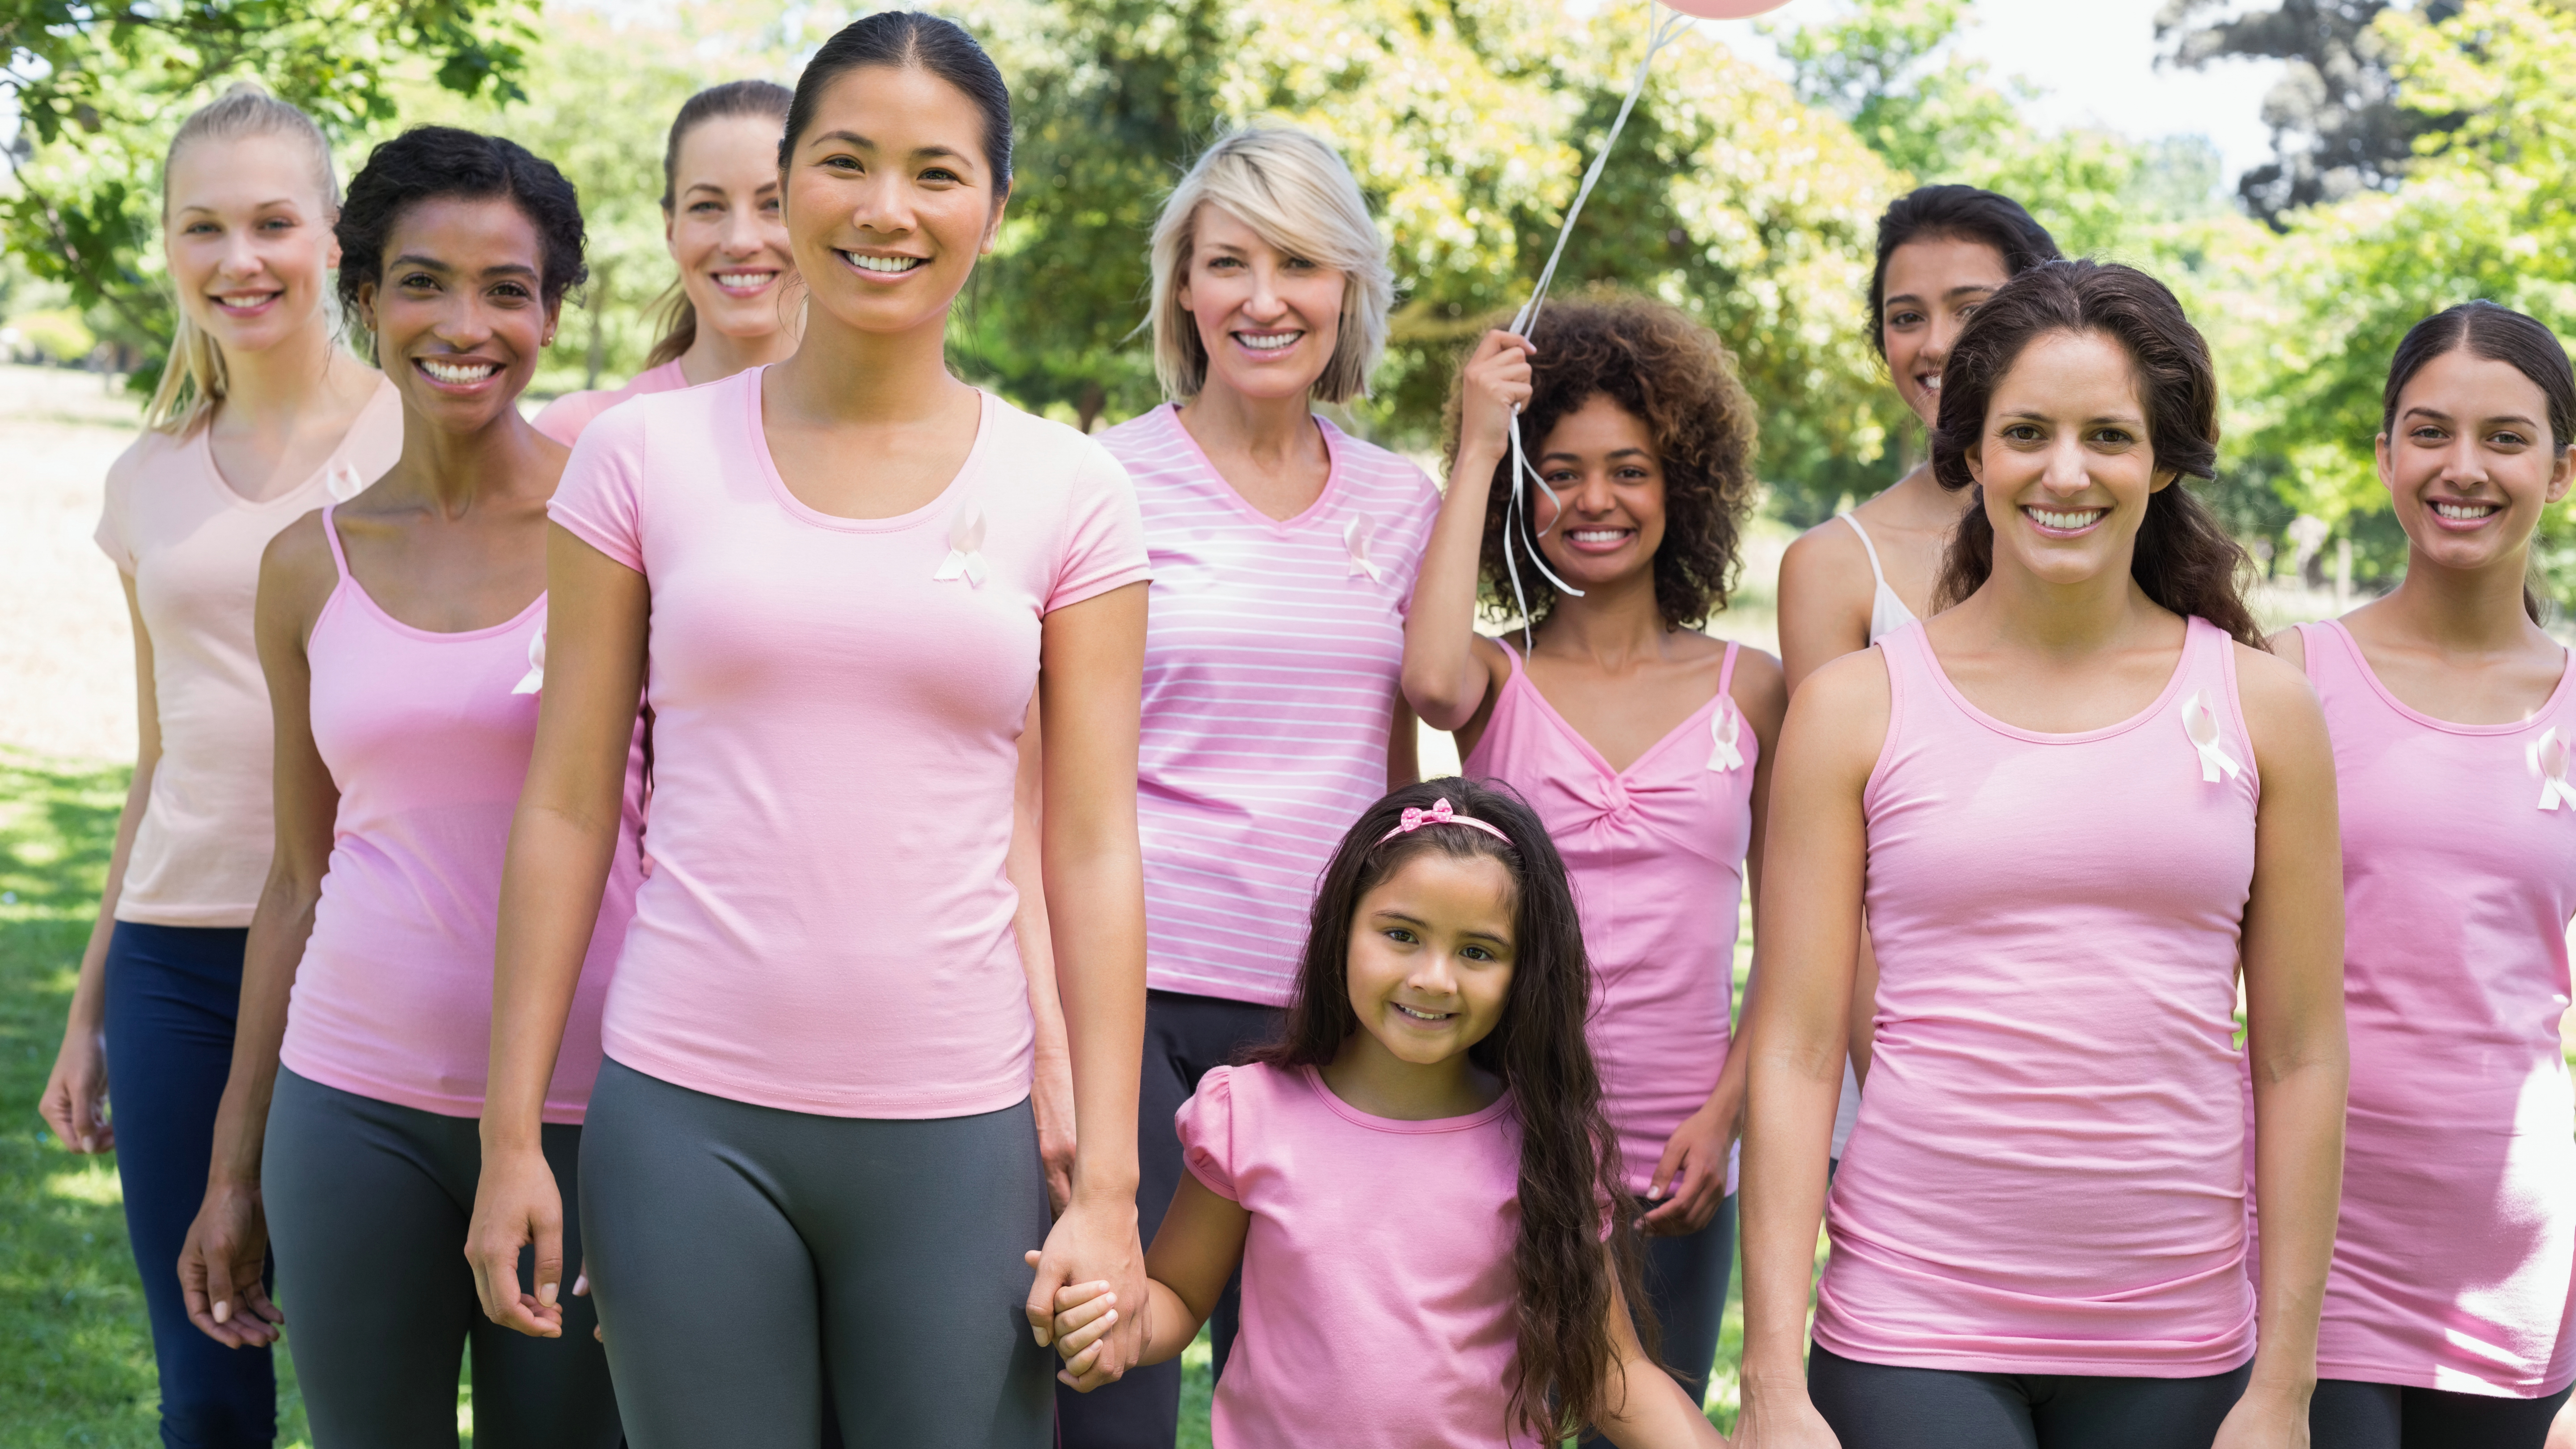 a group of multiethnic women and a young girl standing outside in a park, all wearing pink and supporting breast cancer awareness